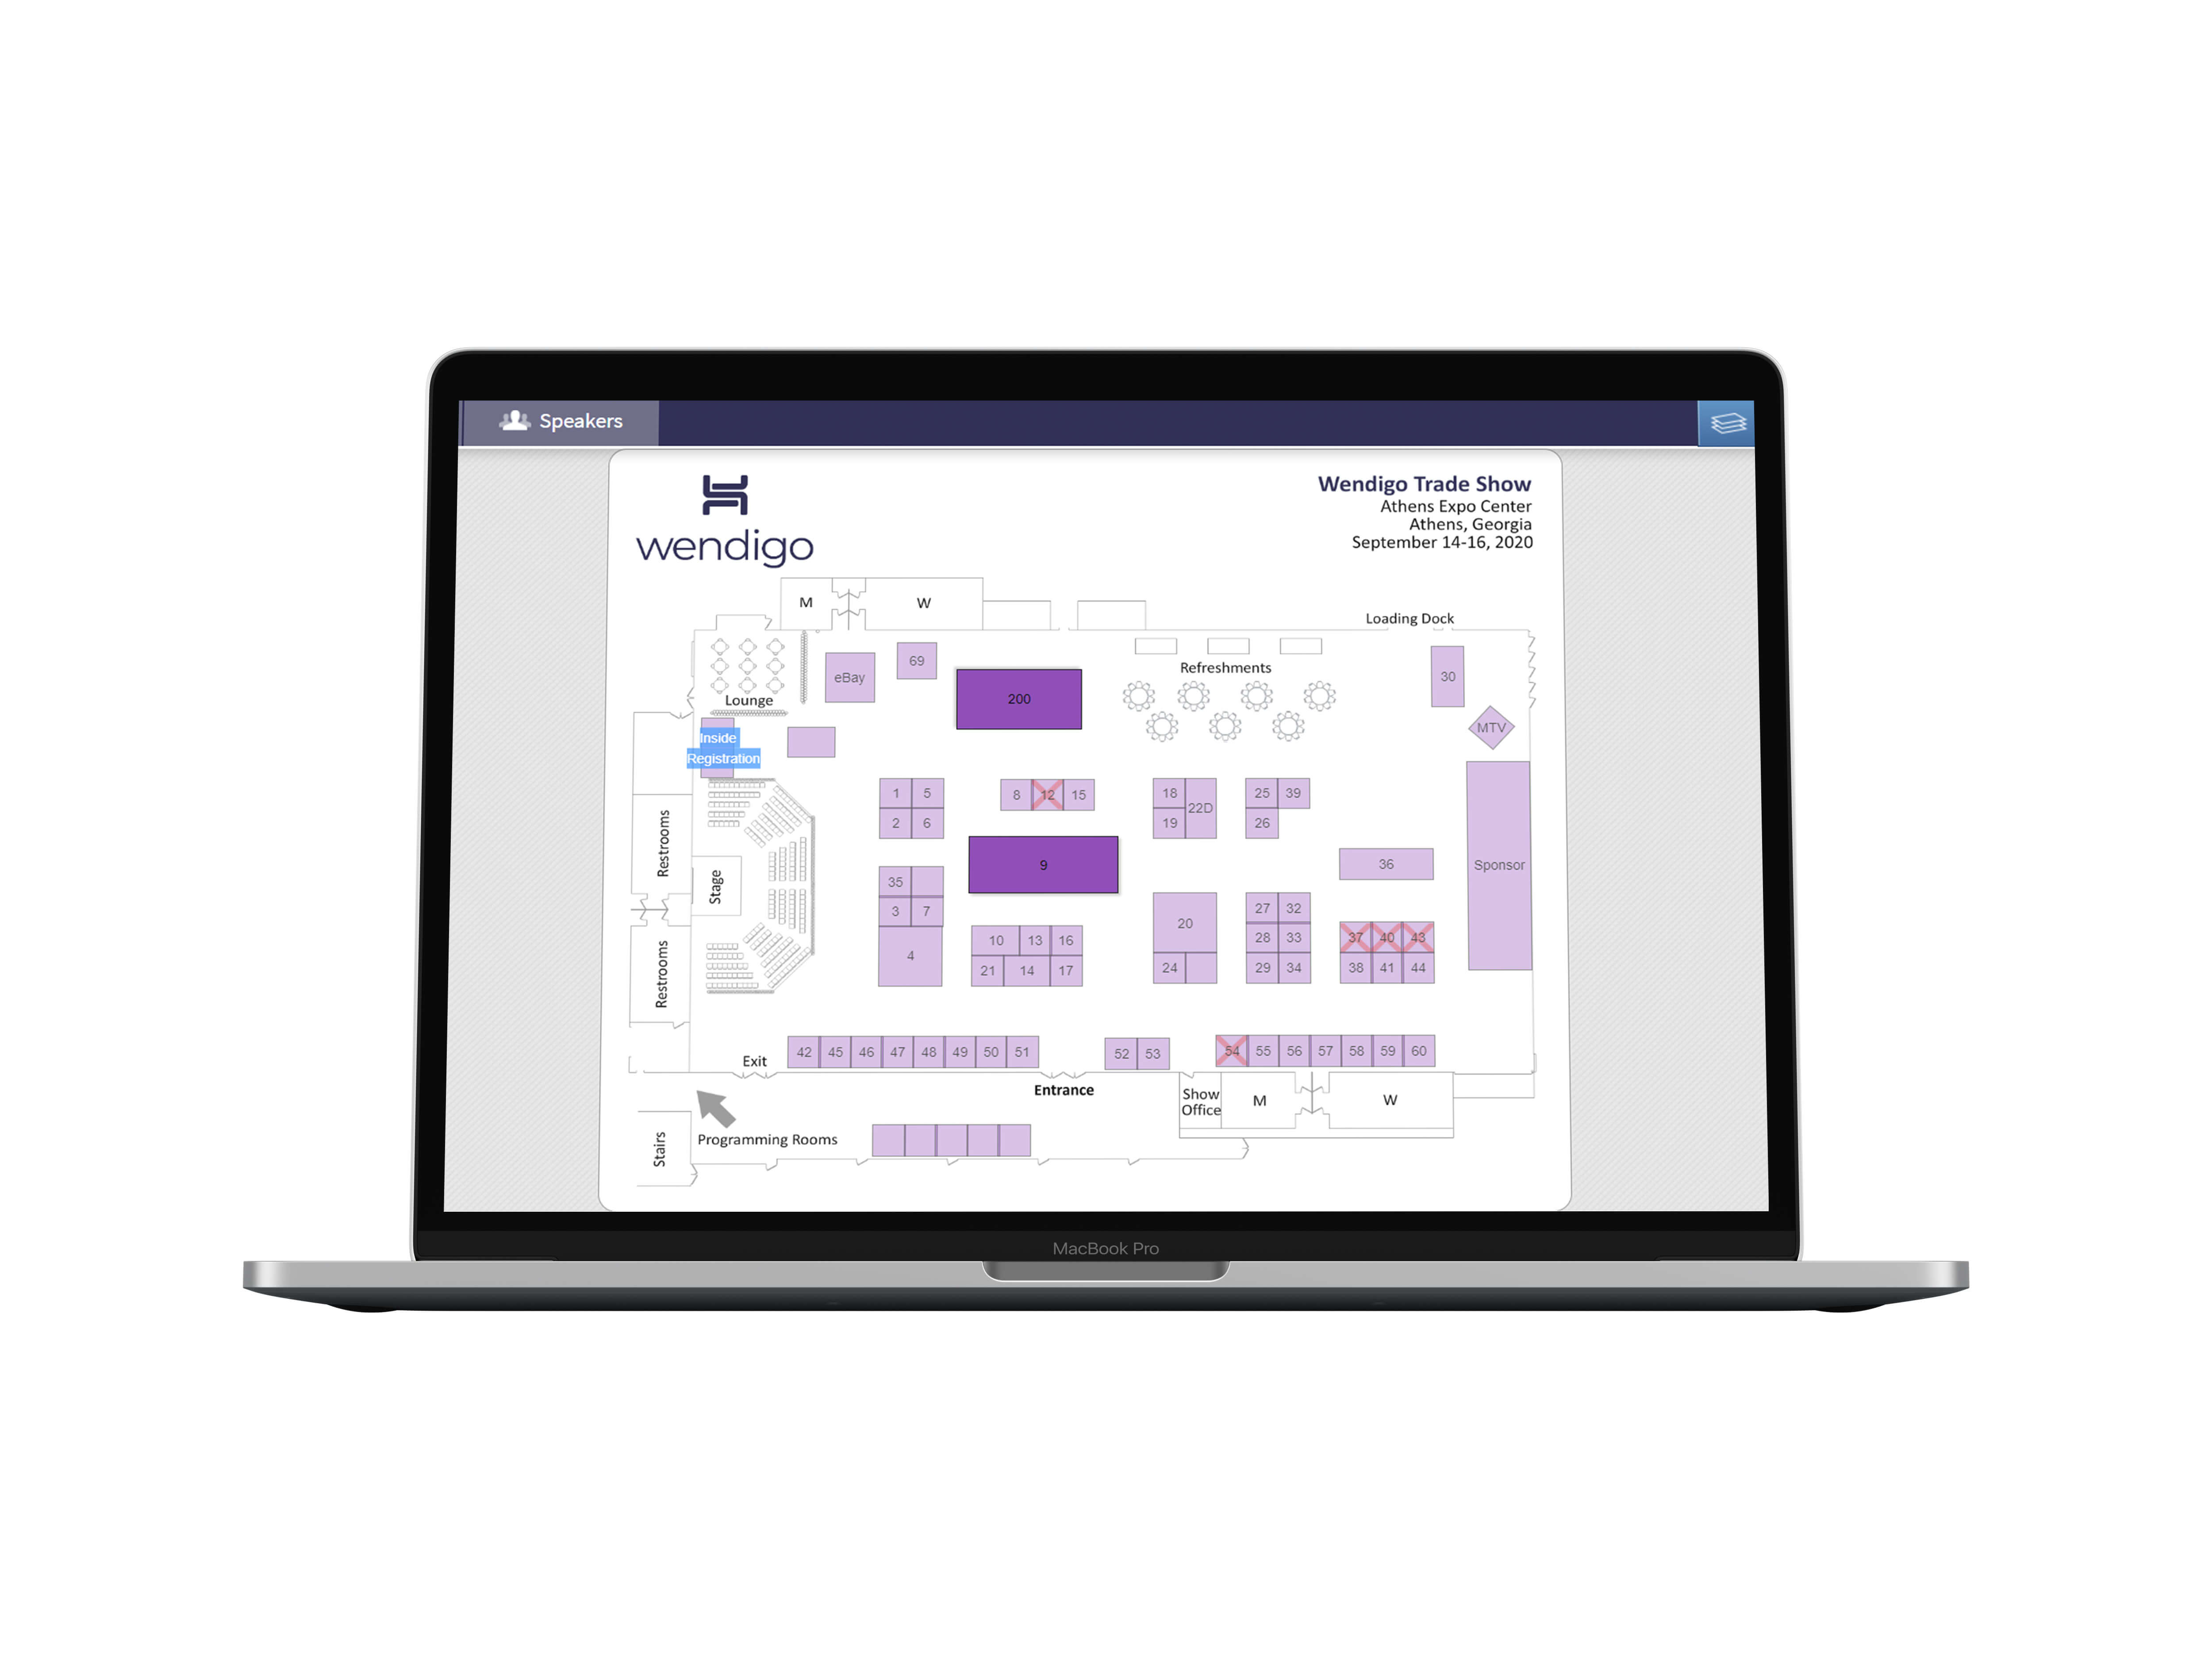 Wendigo Floorplan on a Desktop Screen